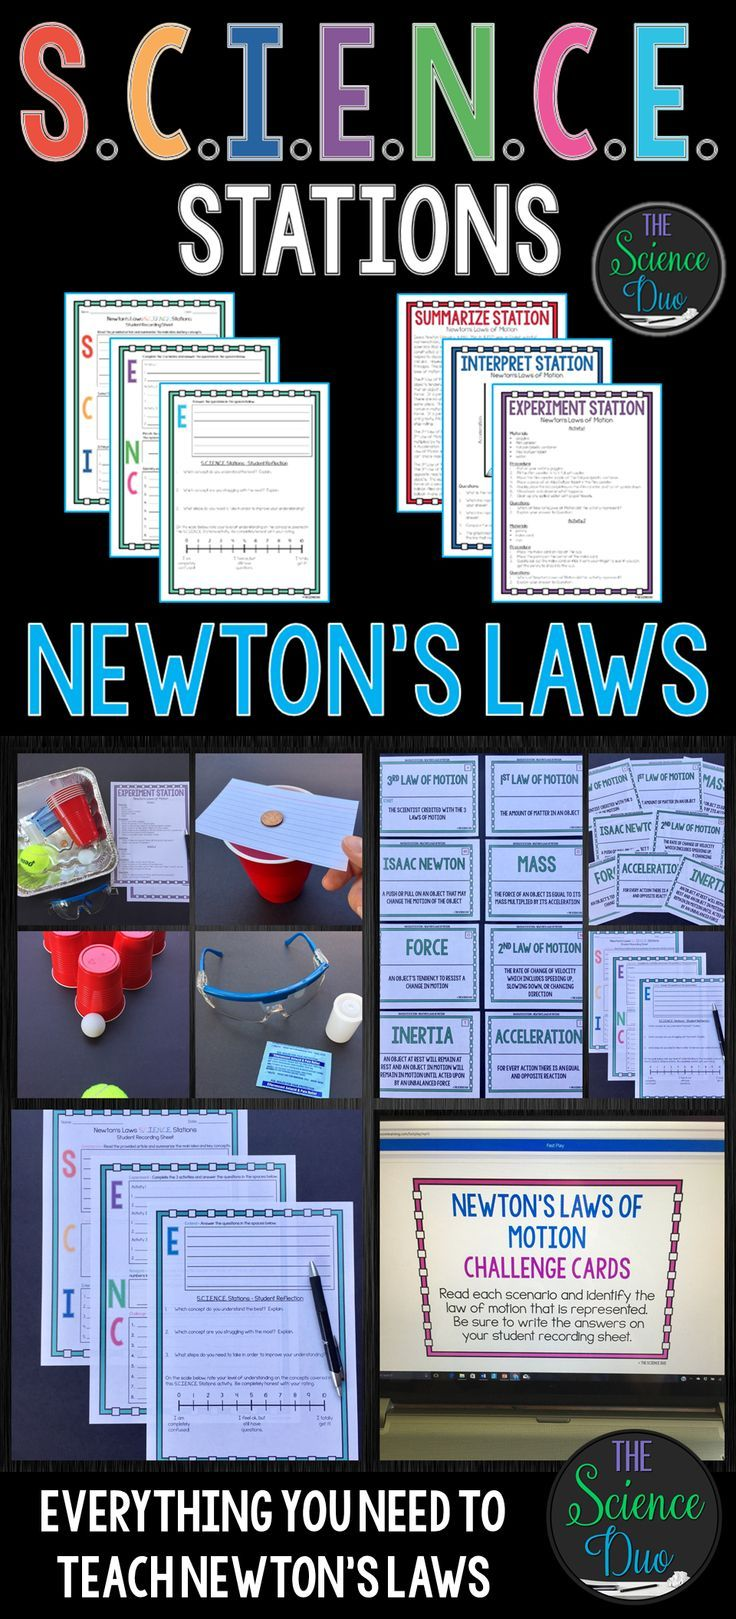 This Newton's Laws of Motion S.C.I.E.N.C.E. Station activity is designed to get your students engaged, collaborating, and moving in your daily lesson. Each station provides a different method for reinforcing important science content. These stations will have students Summarize, Create, Interpret, Experiment, Navigate, Challenge, and Extend.